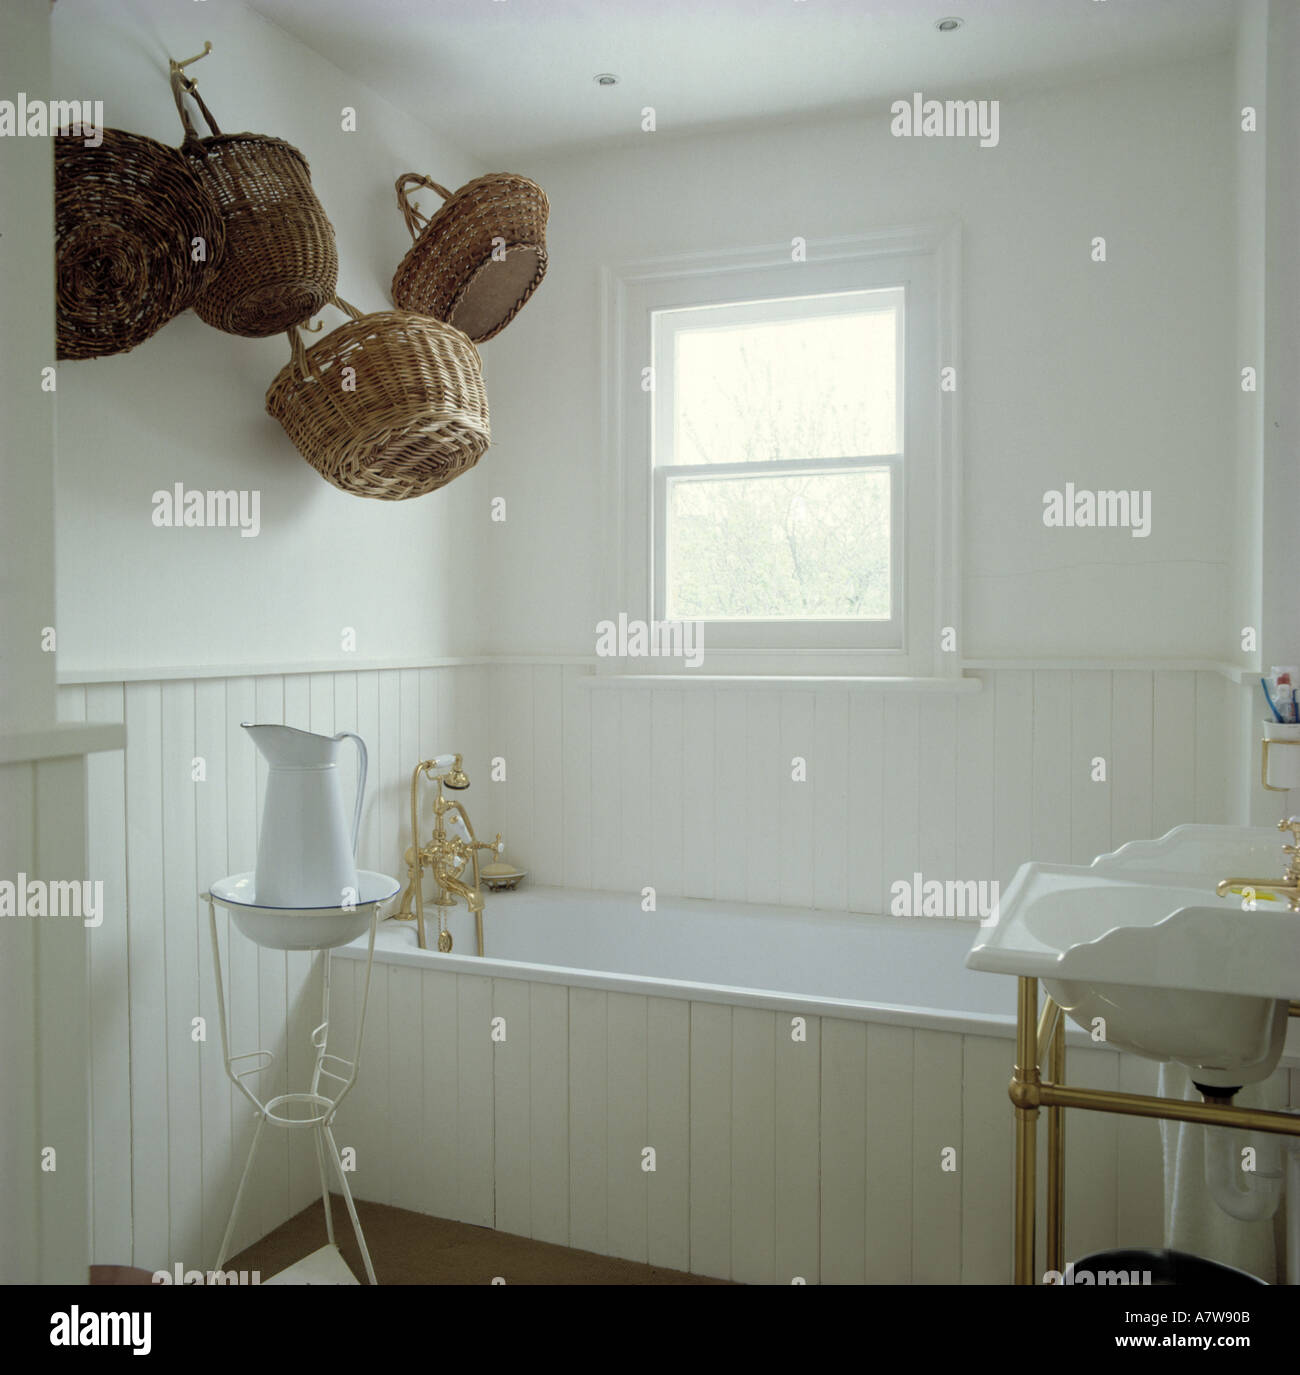 Collection Of Baskets On Wall In White Tongue Groove Panelling In Stock Photo Alamy